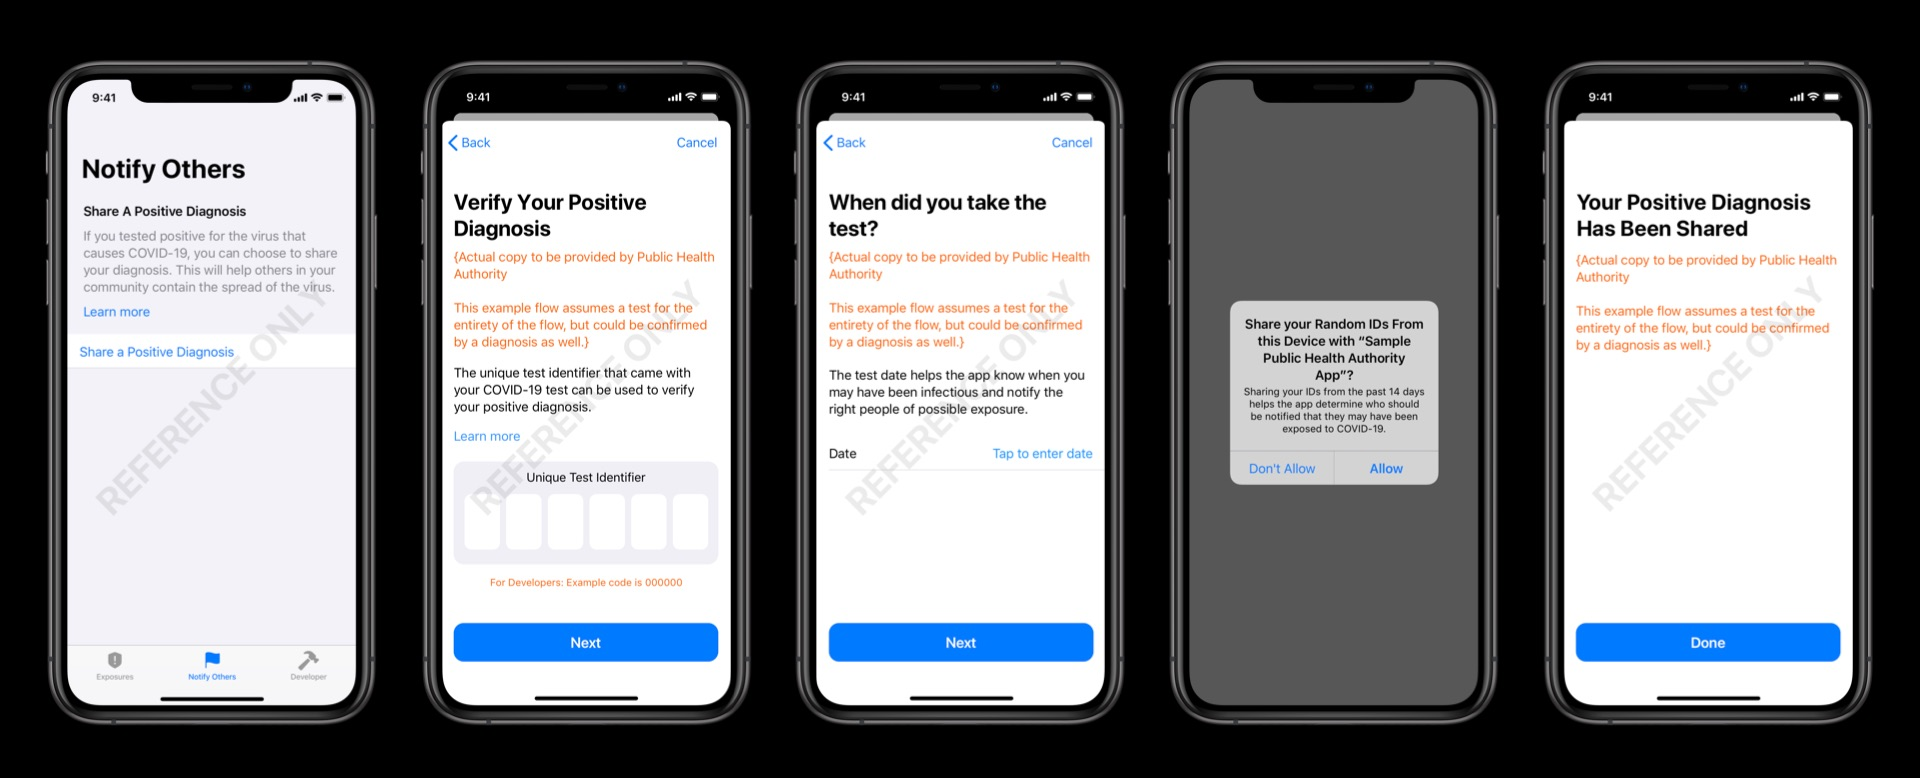 01-COVID-19-Exposure-Notifications-Sample-Public-Health-Authority-App-Onboarding-iOS233